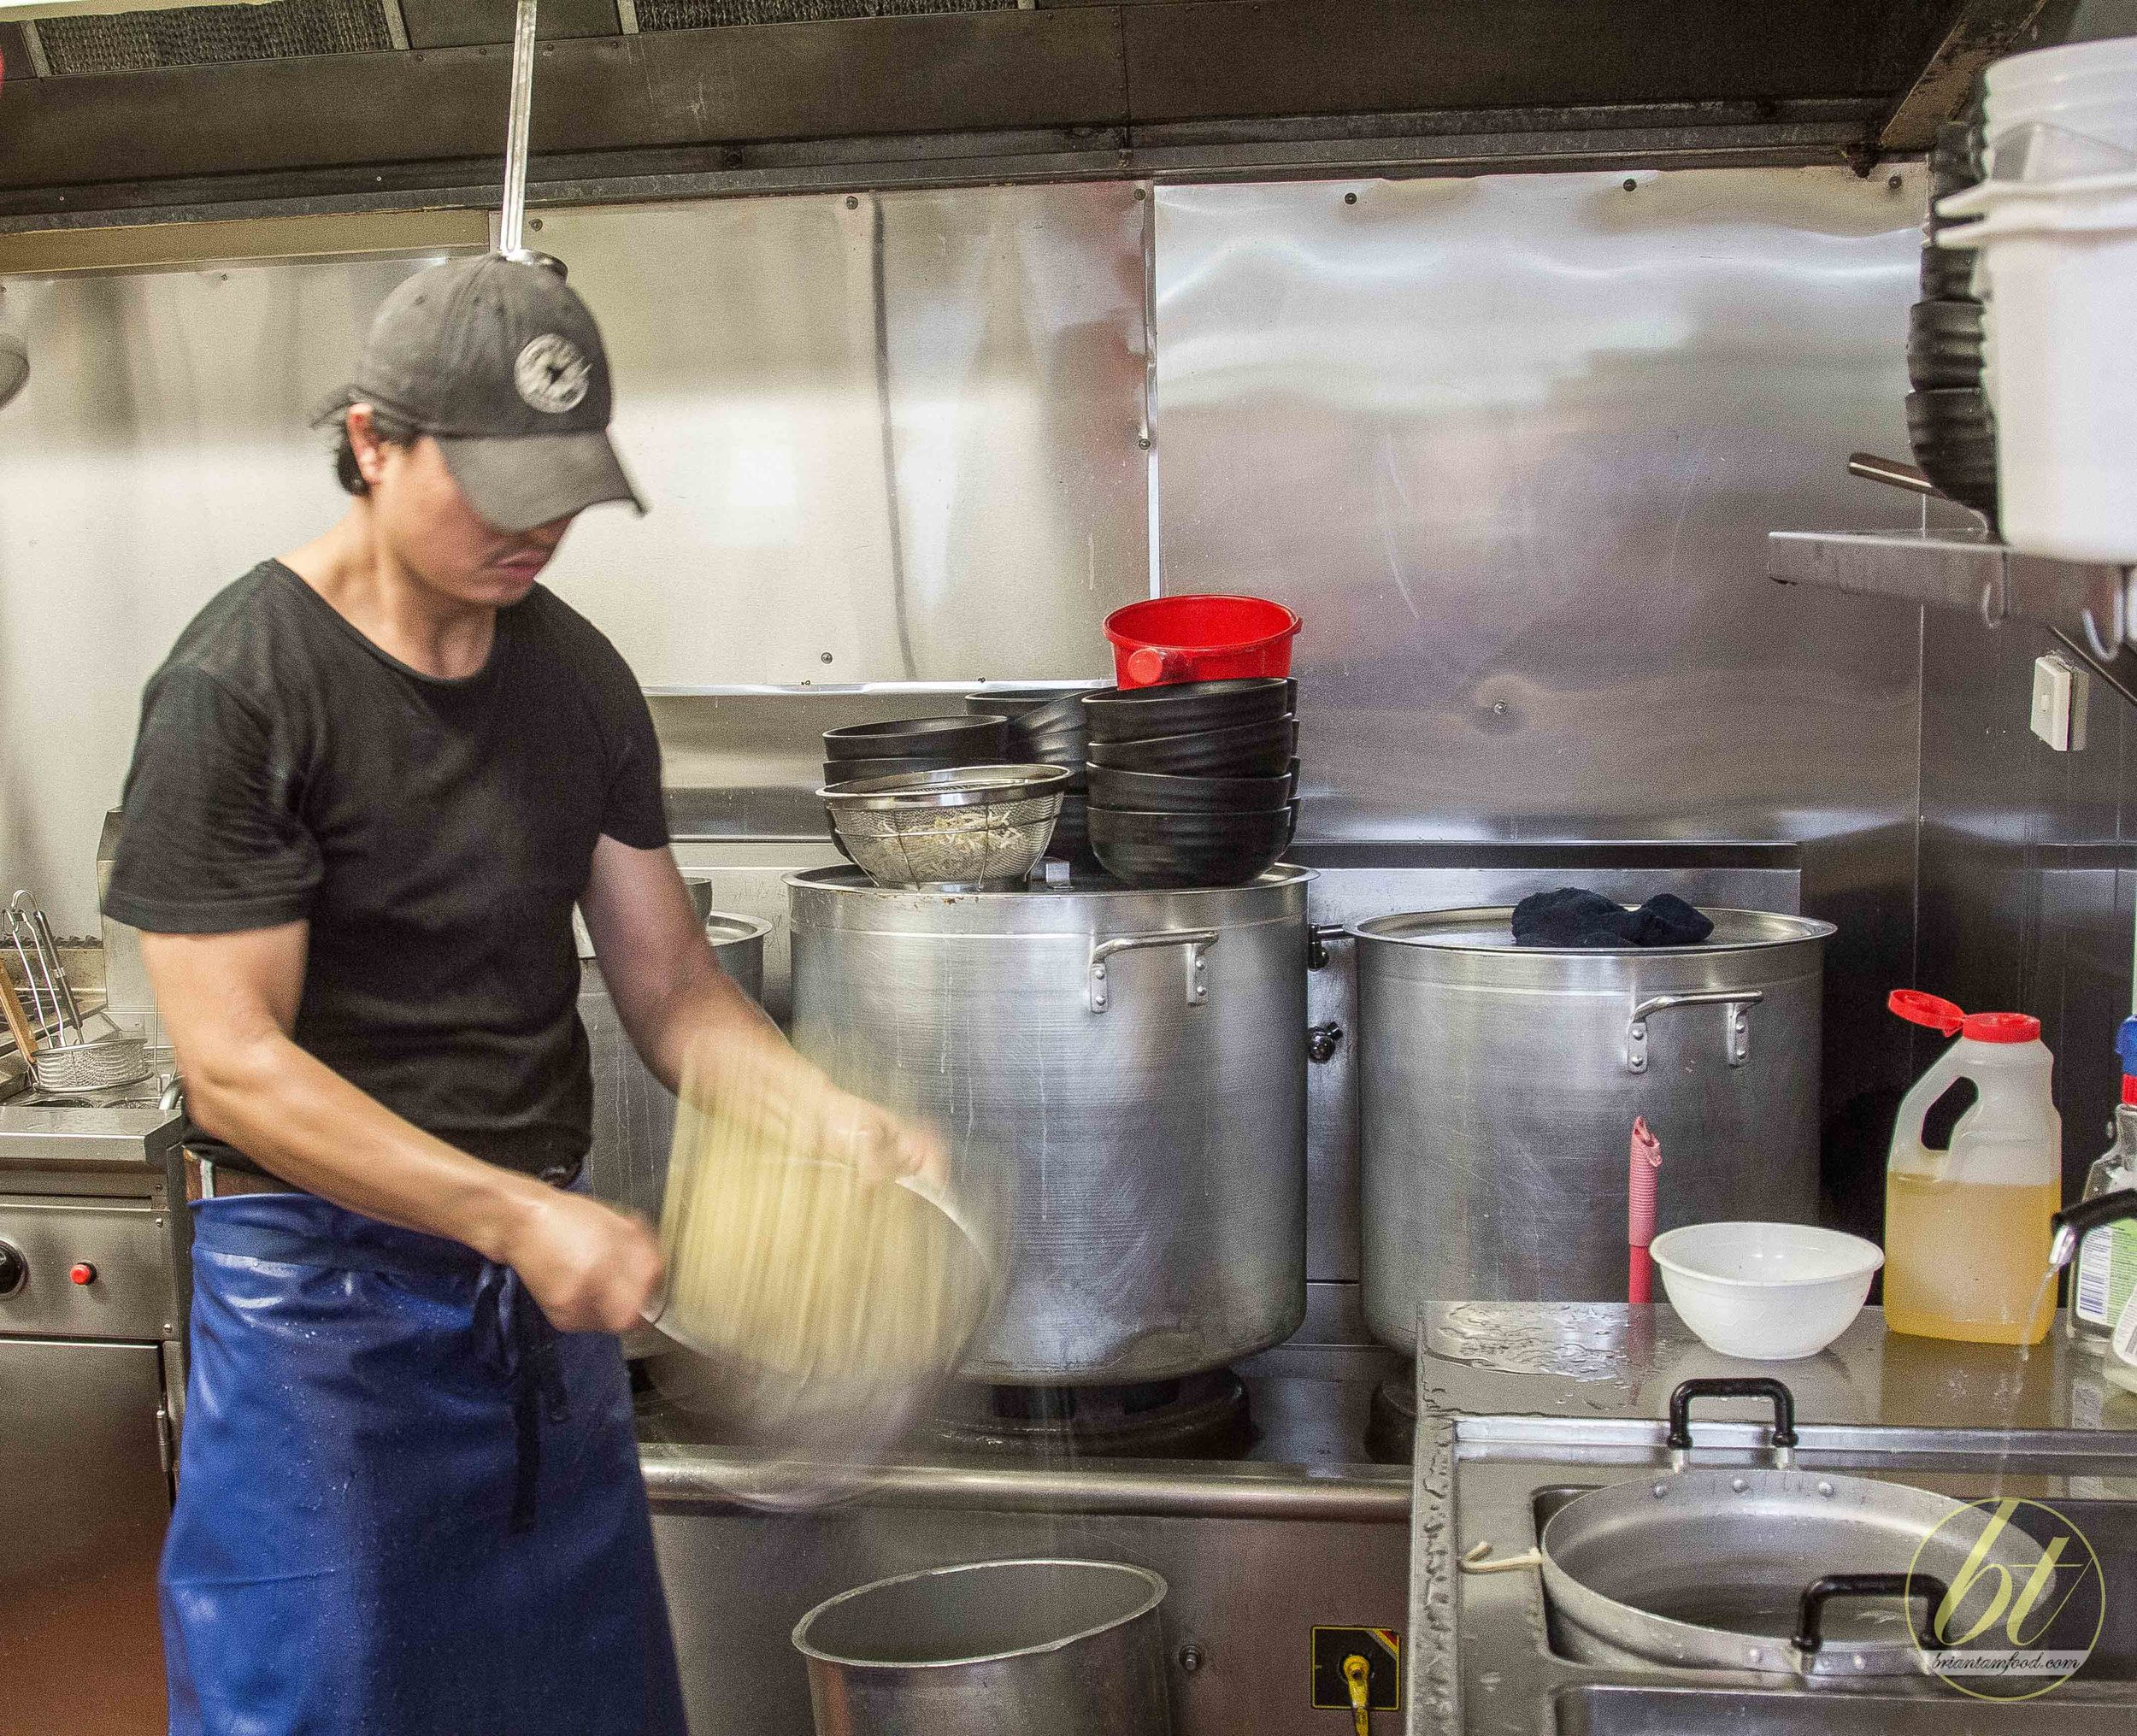 Chef O-San draining the cooked noodles of any excess water by giving the colander a few big shakes!